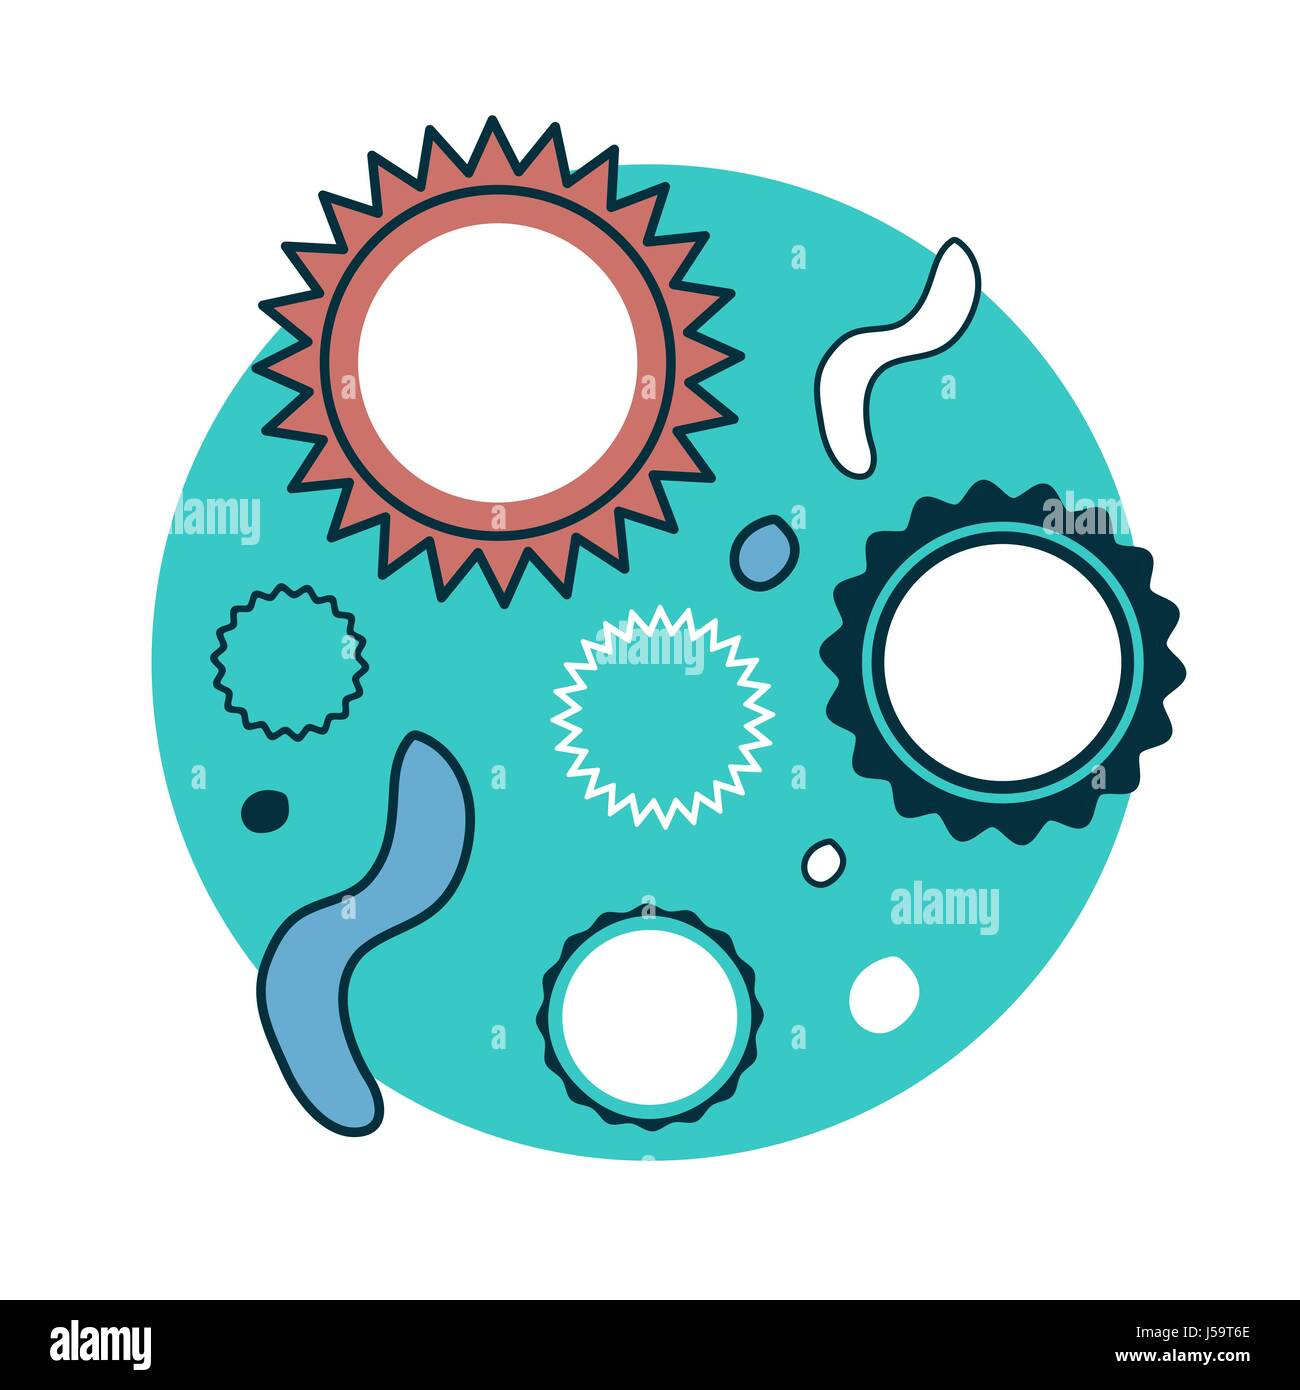 cartoon bacteria and viruses under microscope stock vector image art alamy https www alamy com stock photo cartoon bacteria and viruses under microscope 140972790 html